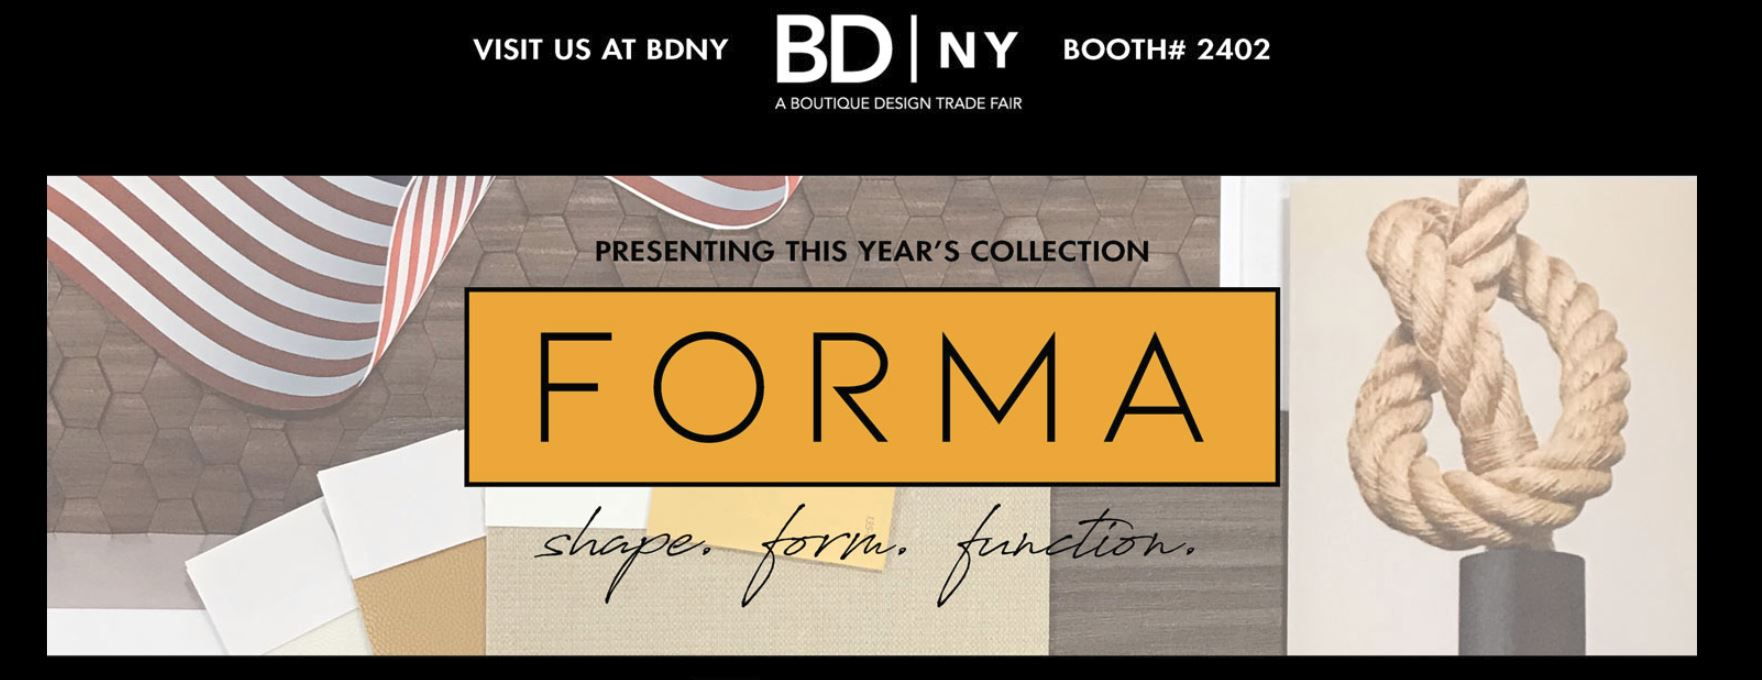 Tips to Make the Most Out of This Year's BDNY Show